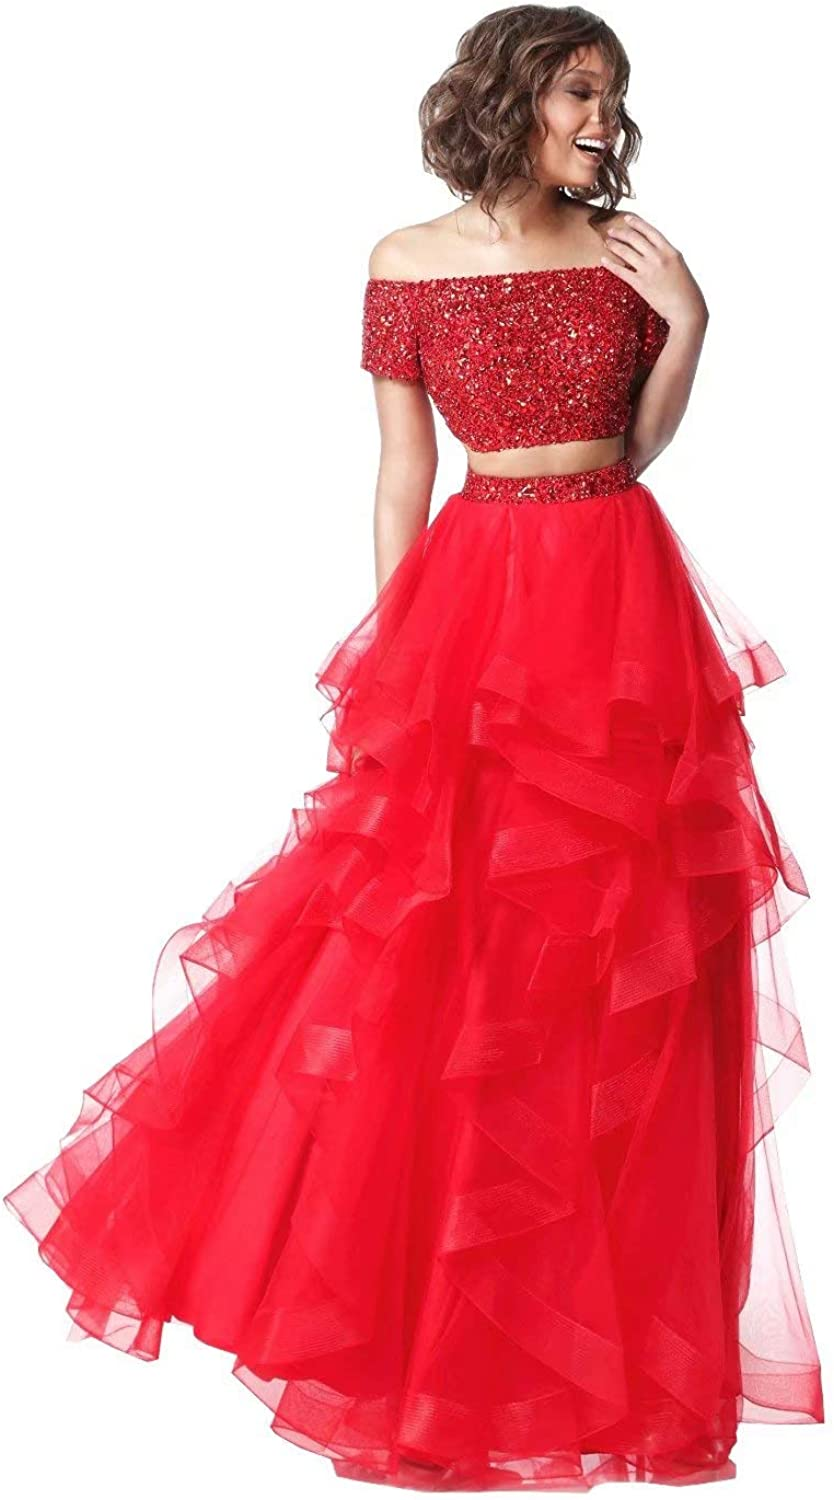 Unions Women Two Piece Off The Shoulder Beaded Prom Dresses Layered Tulle Formal Evening Gown